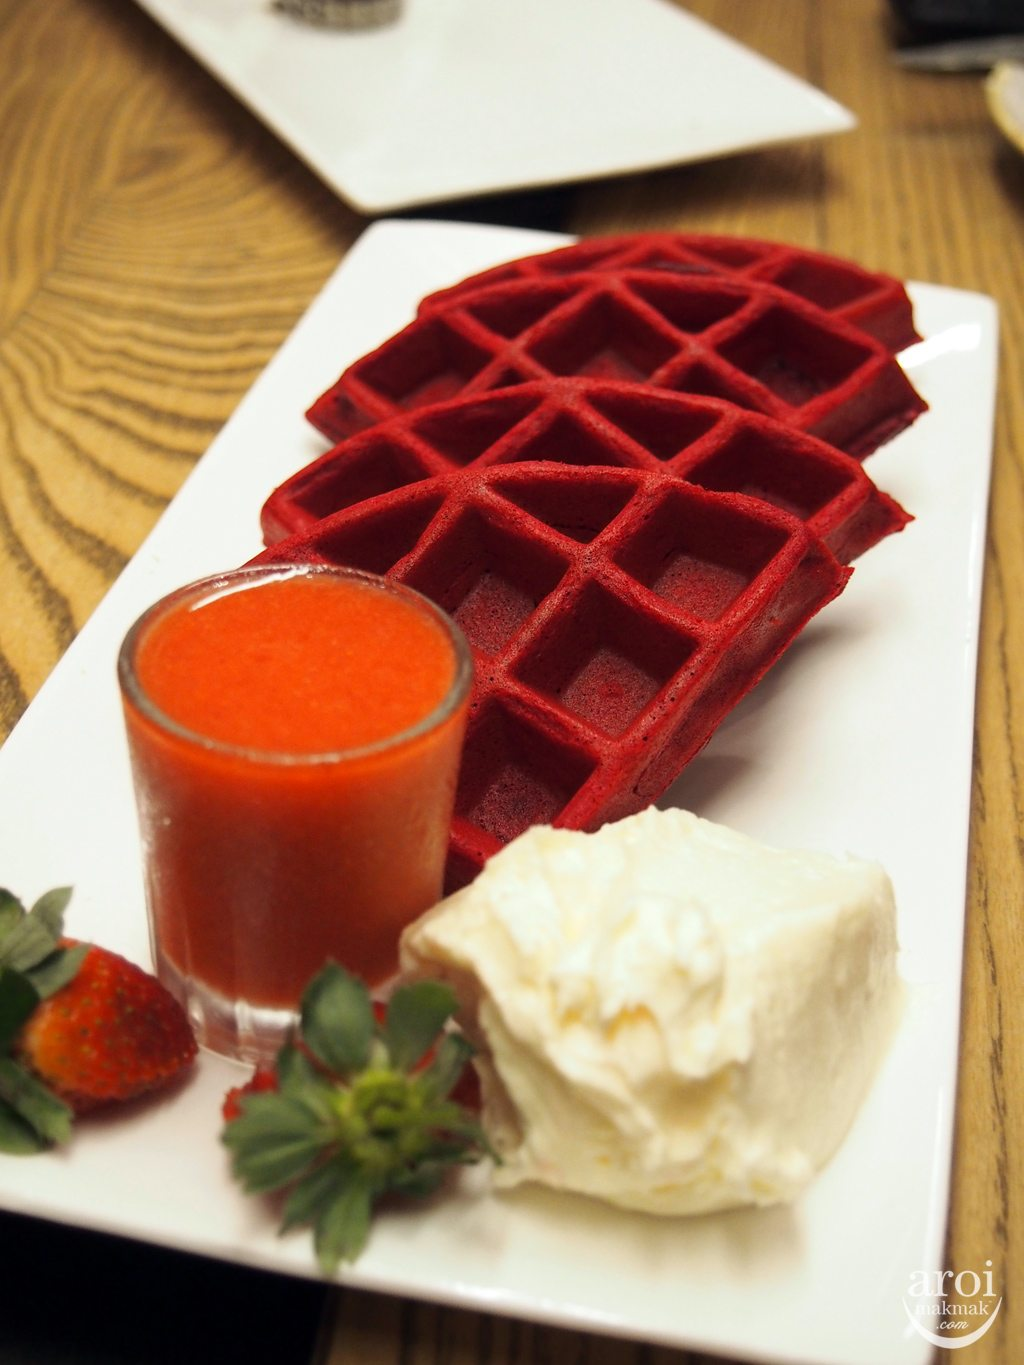 Kalpapruek - Red Velvet Waffle with Cream Cheese